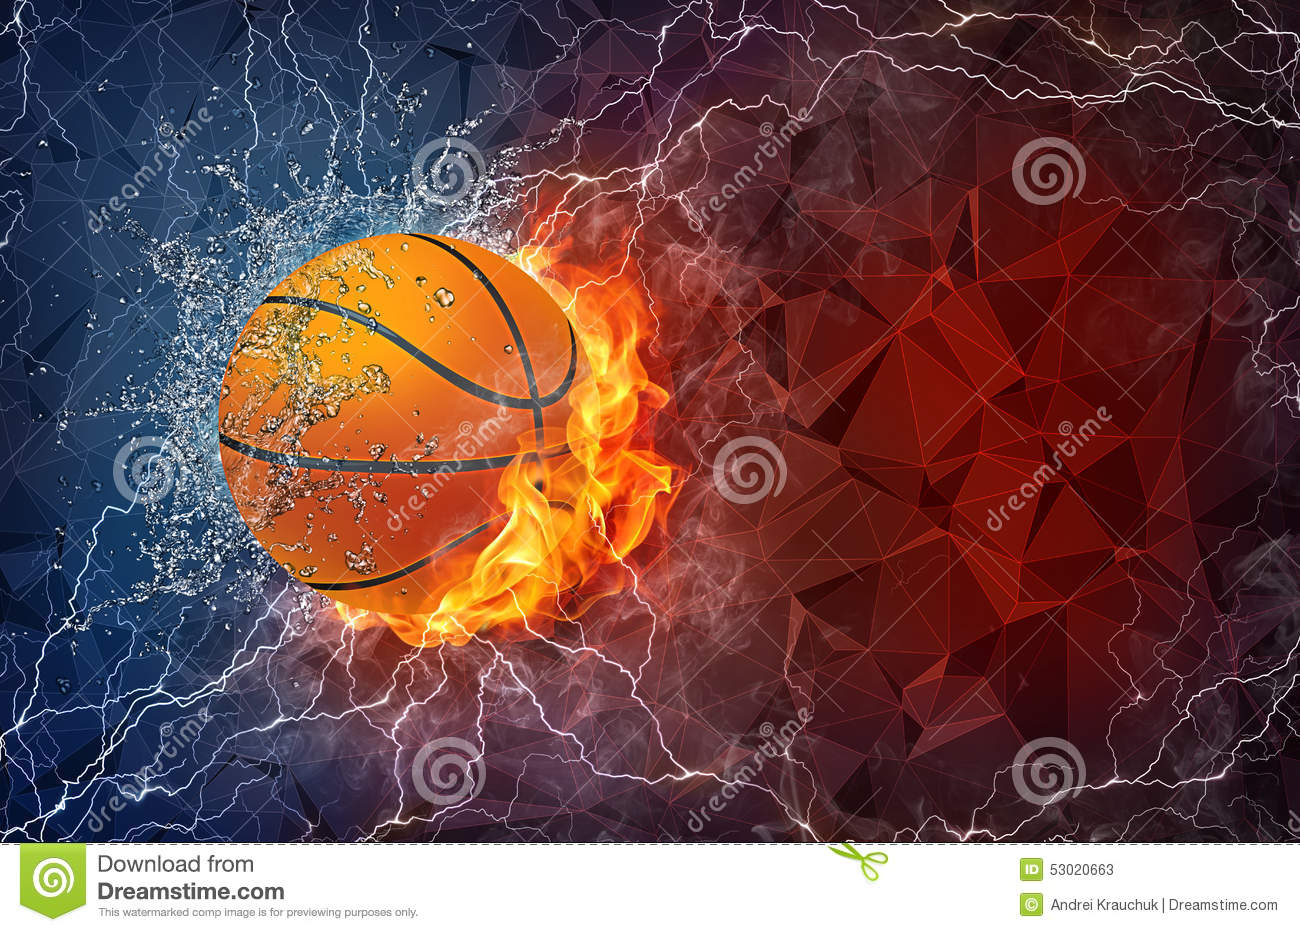 Deportes Pelotas Fondo Grunge: Basketball Ball In Fire And Water Stock Illustration